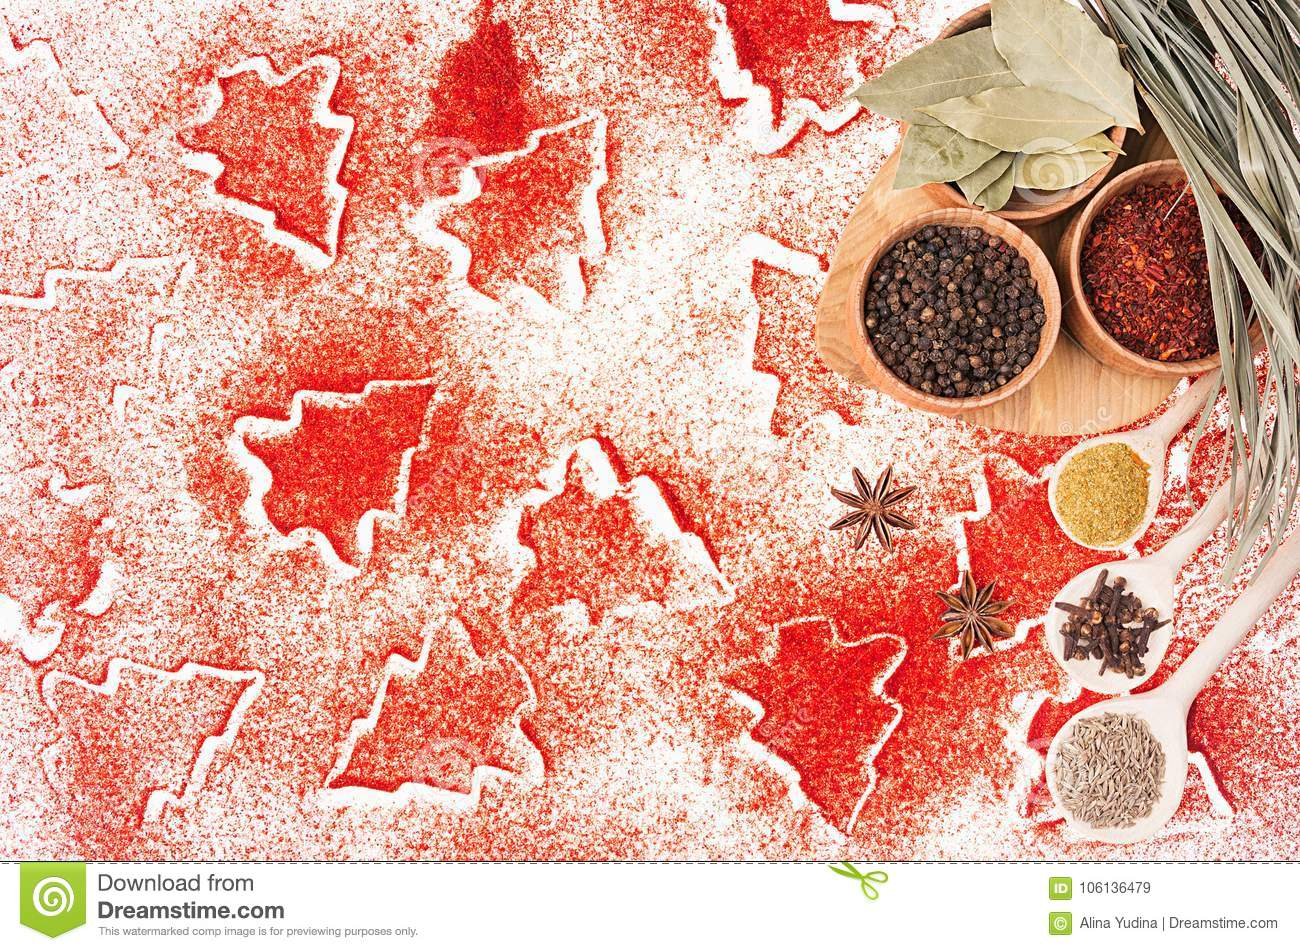 Christmas food background - different dry spices in wooden bowls on red christmas trees pattern, top view, copy space.